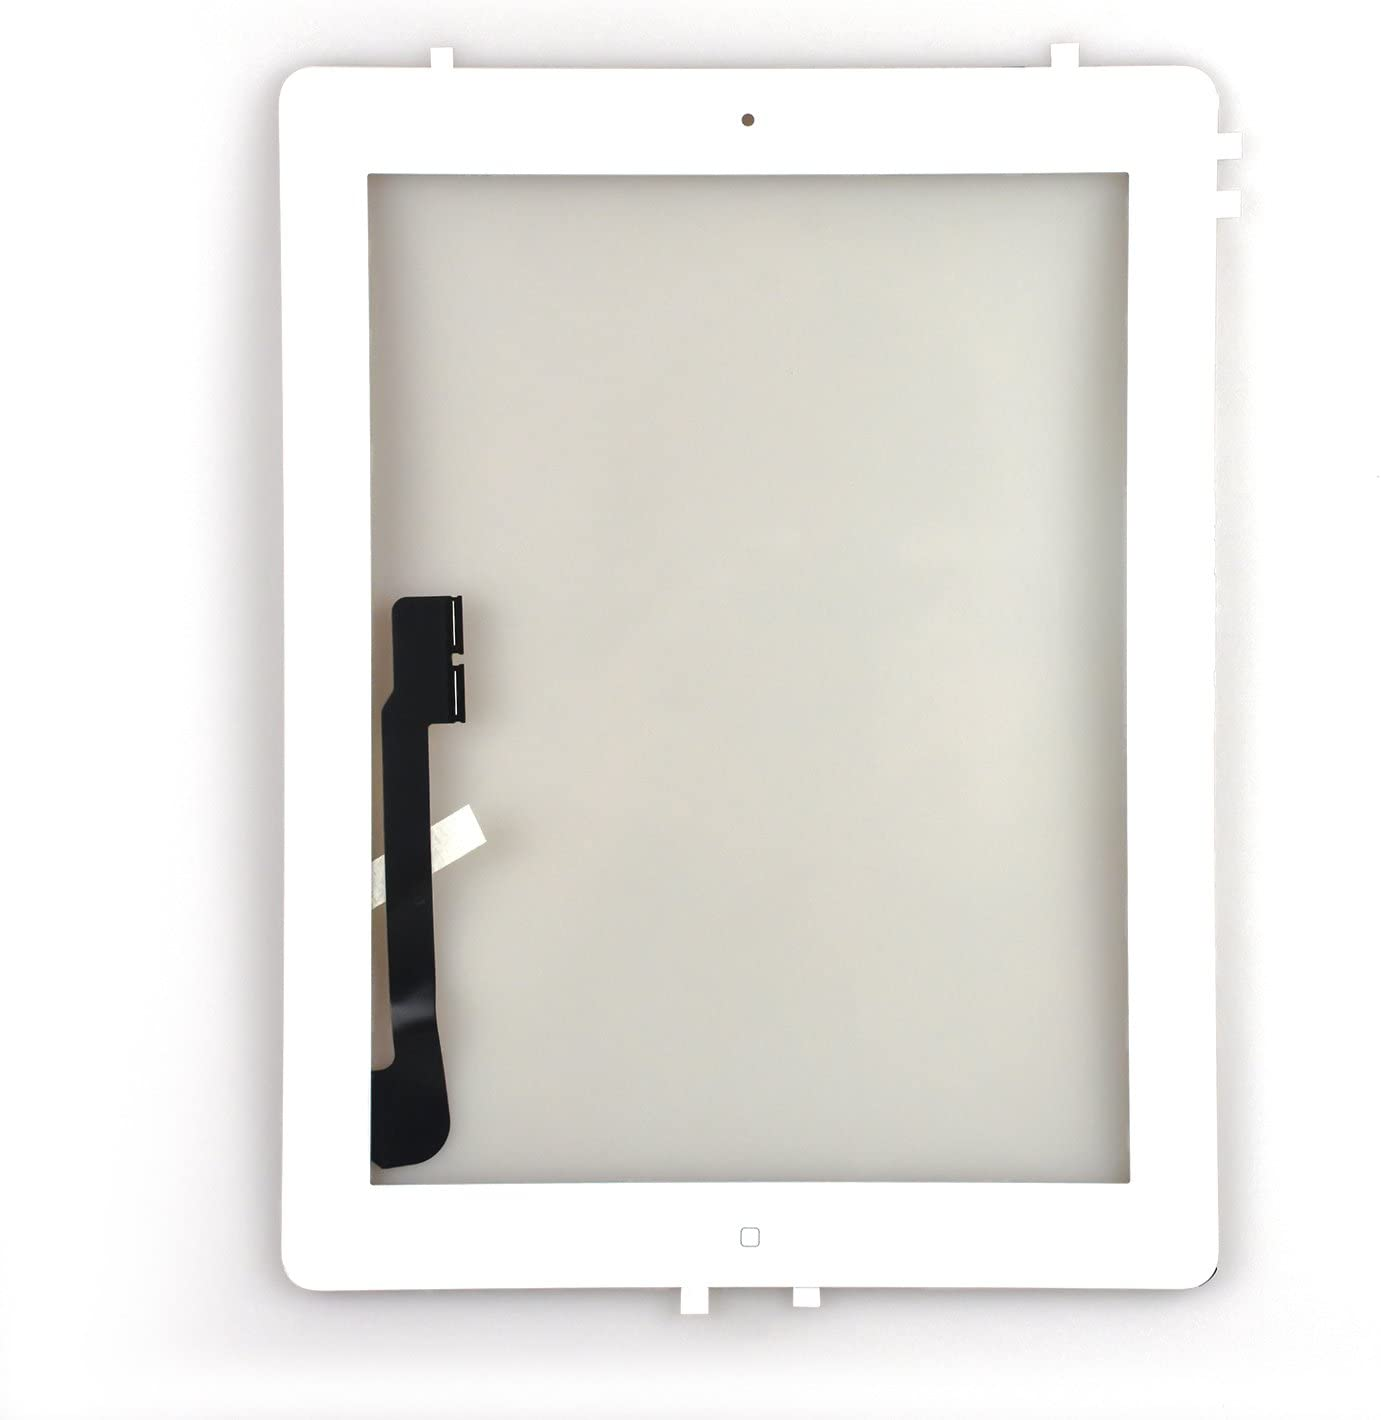 Repuesto Touch Screen para iPad 3 A1416 A1403 A1430 blanco